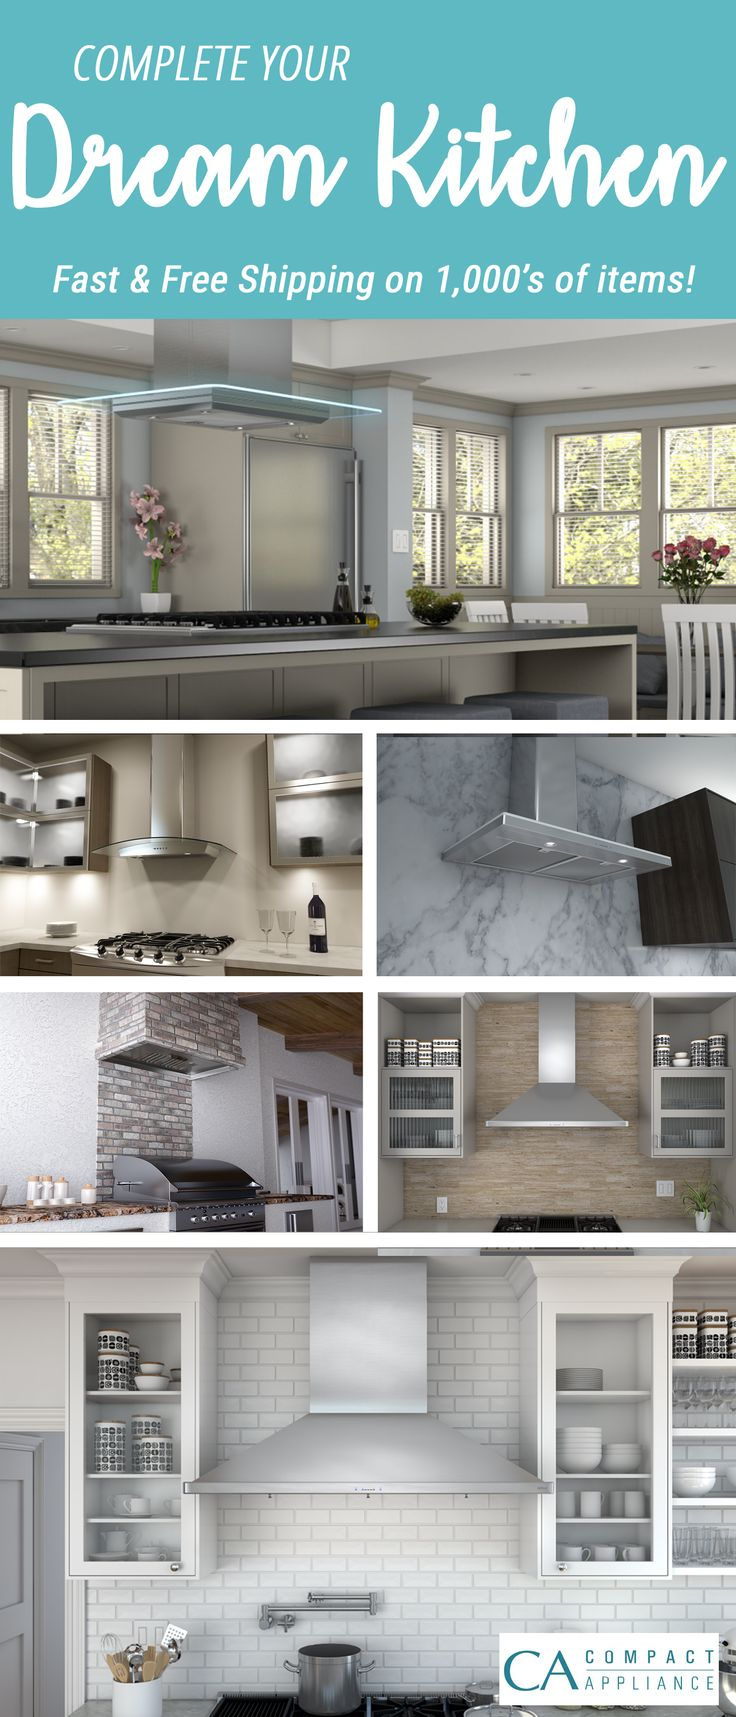 Upgrade Your Liances Range Hoods And Everything Else You Could Need For Dream